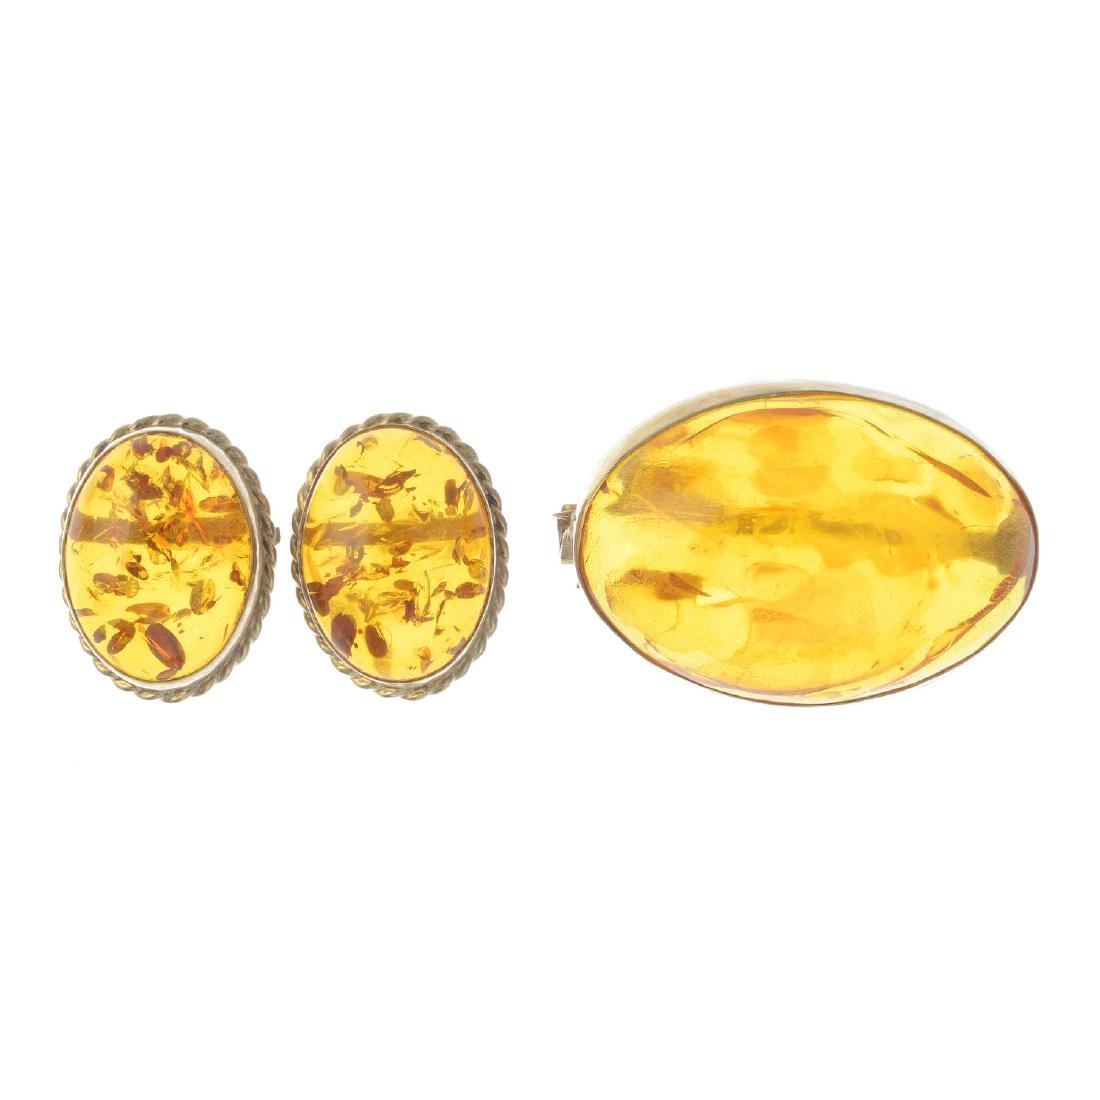 A 9ct gold amber brooch and a pair of earrings. The